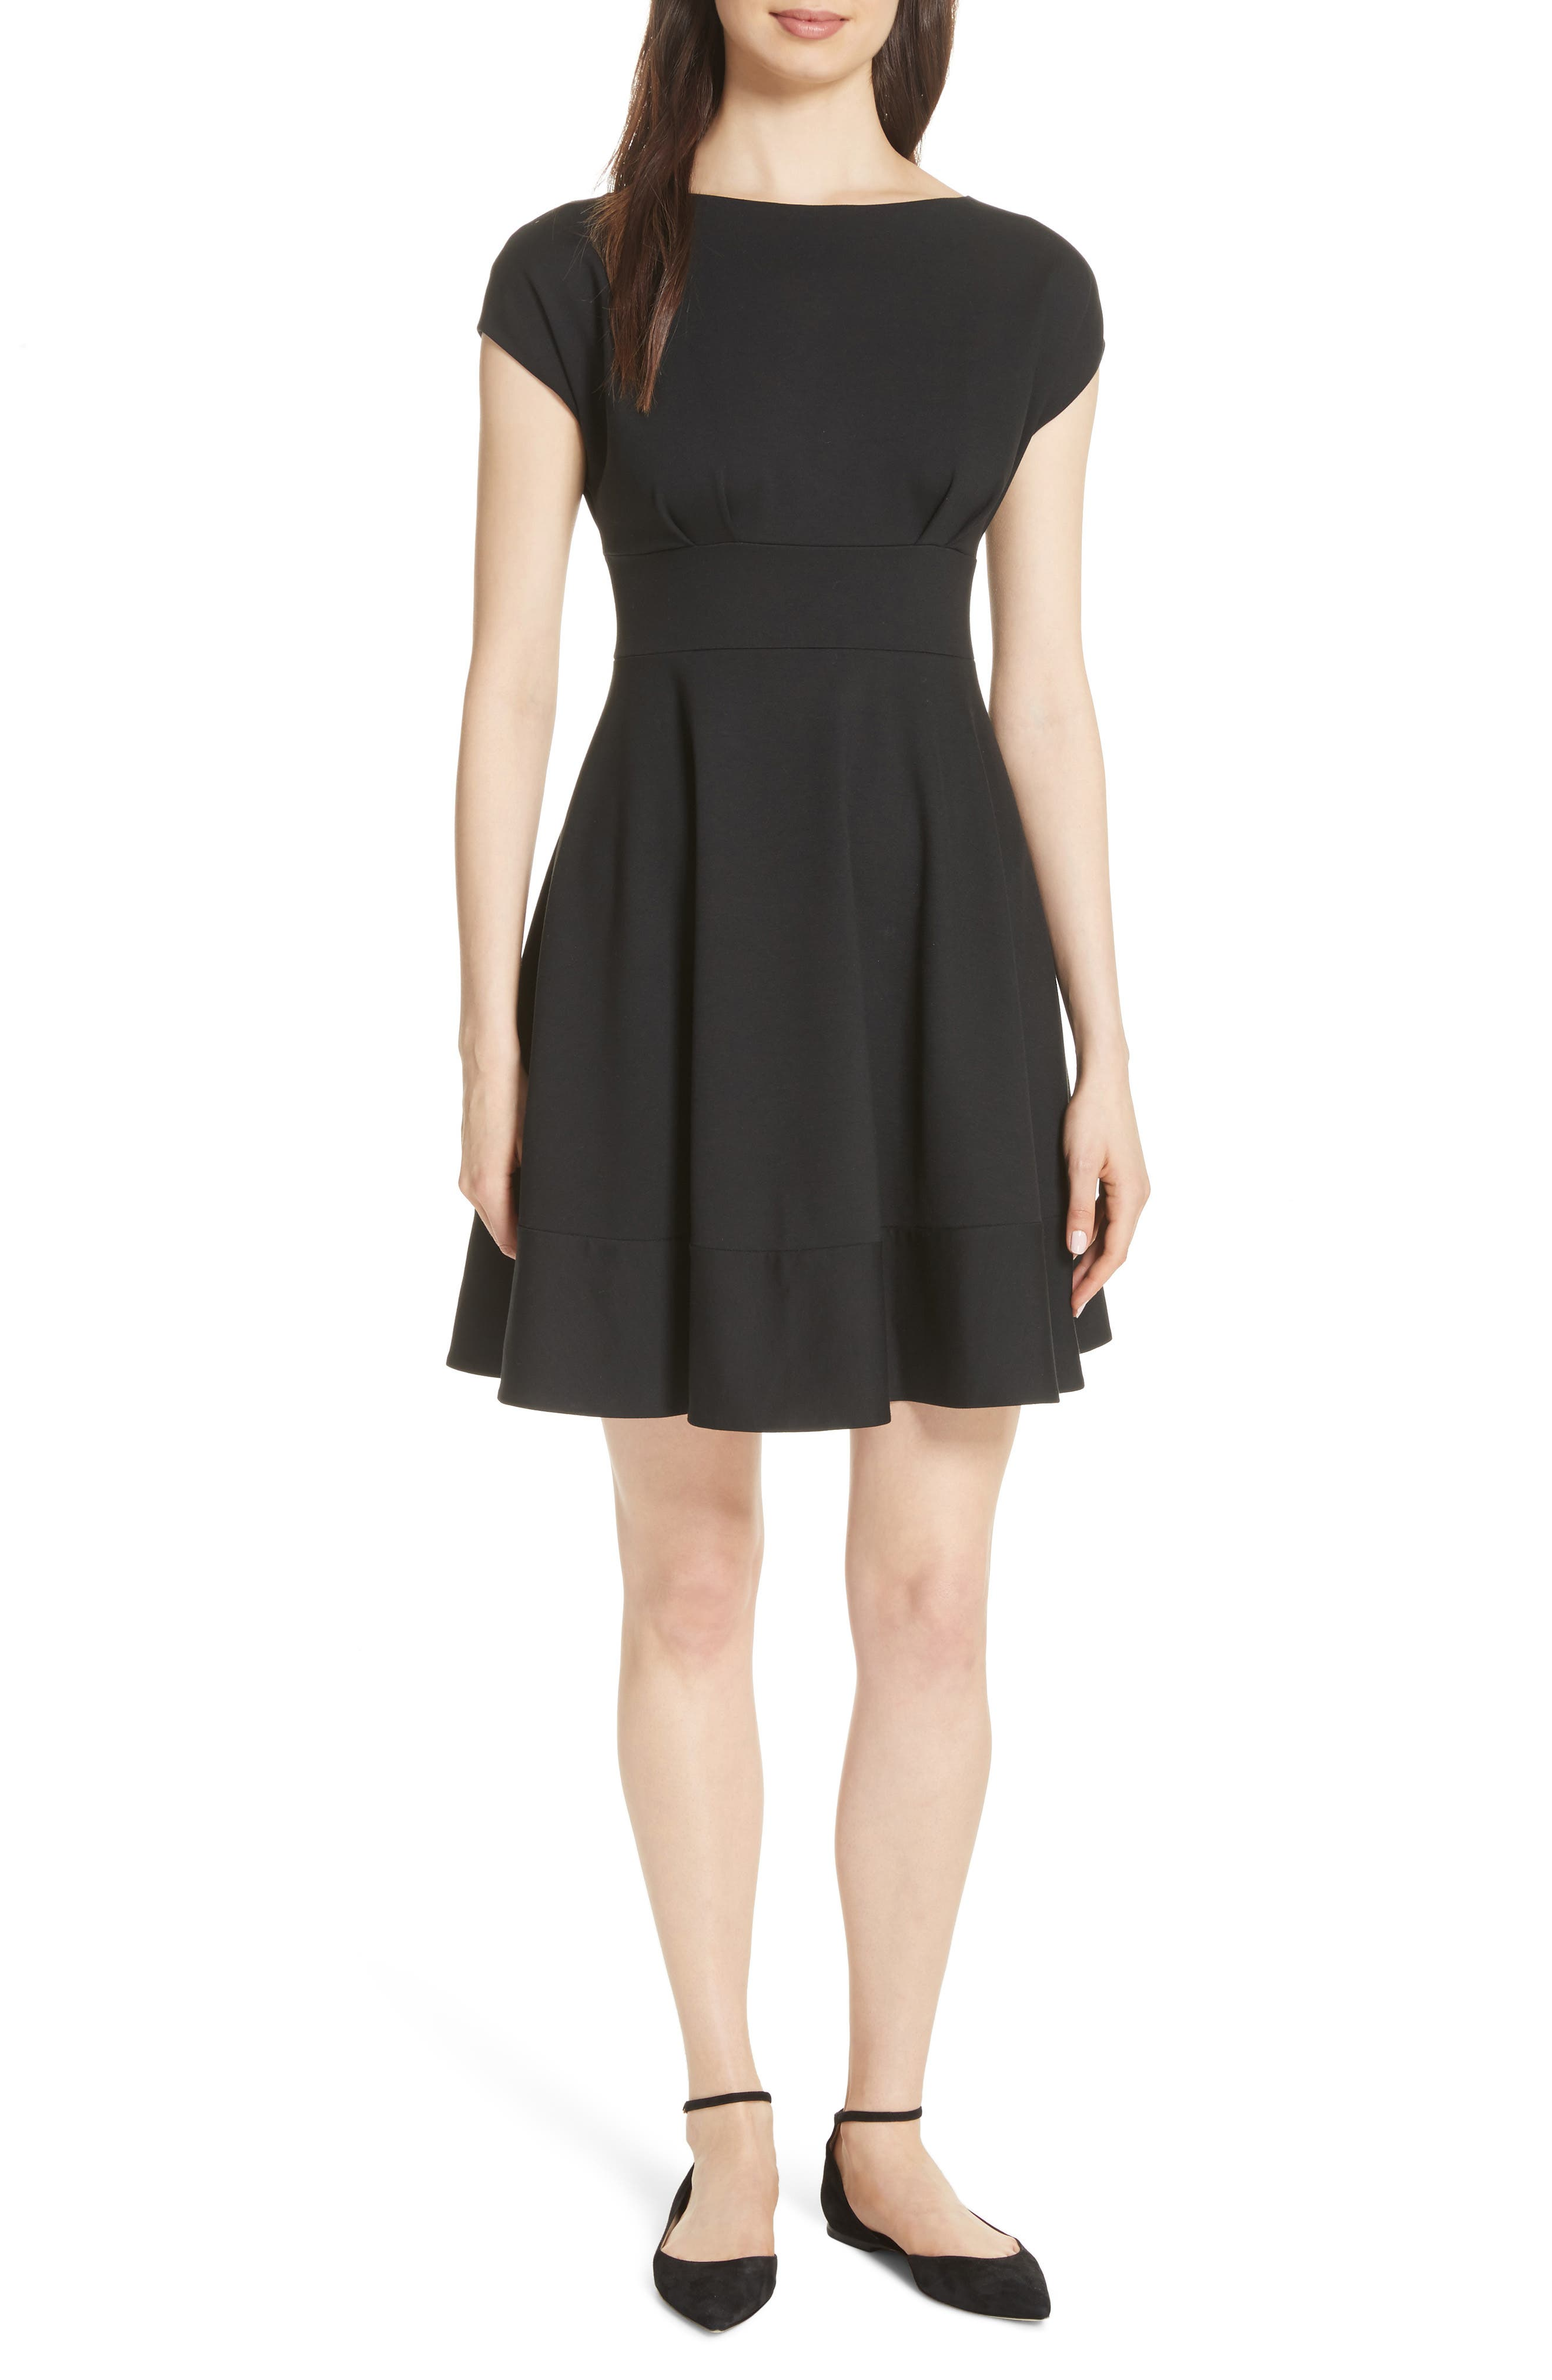 KATE SPADE NEW YORK, ponte fiorella fit & flare dress, Main thumbnail 1, color, BLACK